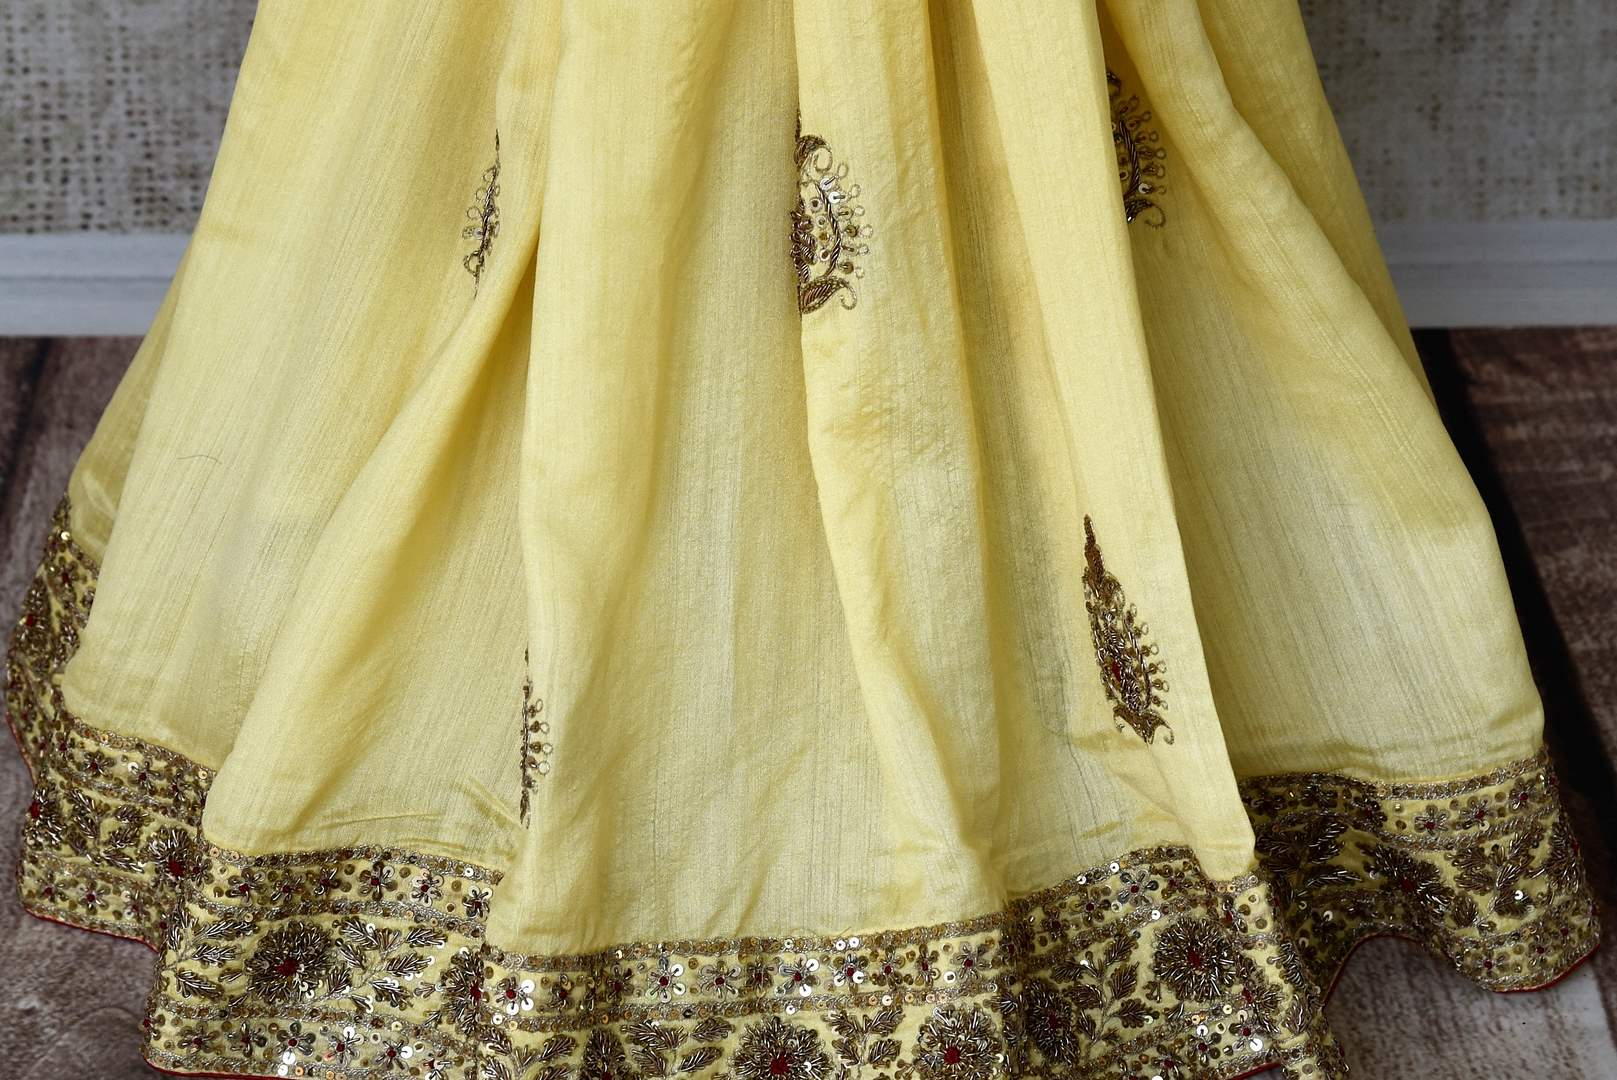 Buy cream color muga silk saree with hand embroidery online in USA. Shop exclusive Indian designer saris, handloom sarees, Banarasi saris, wedding sarees in USA at Pure Elegance clothing store. Explore a range of traditional Indian women clothing also available at our online store. Shop now.-pleats